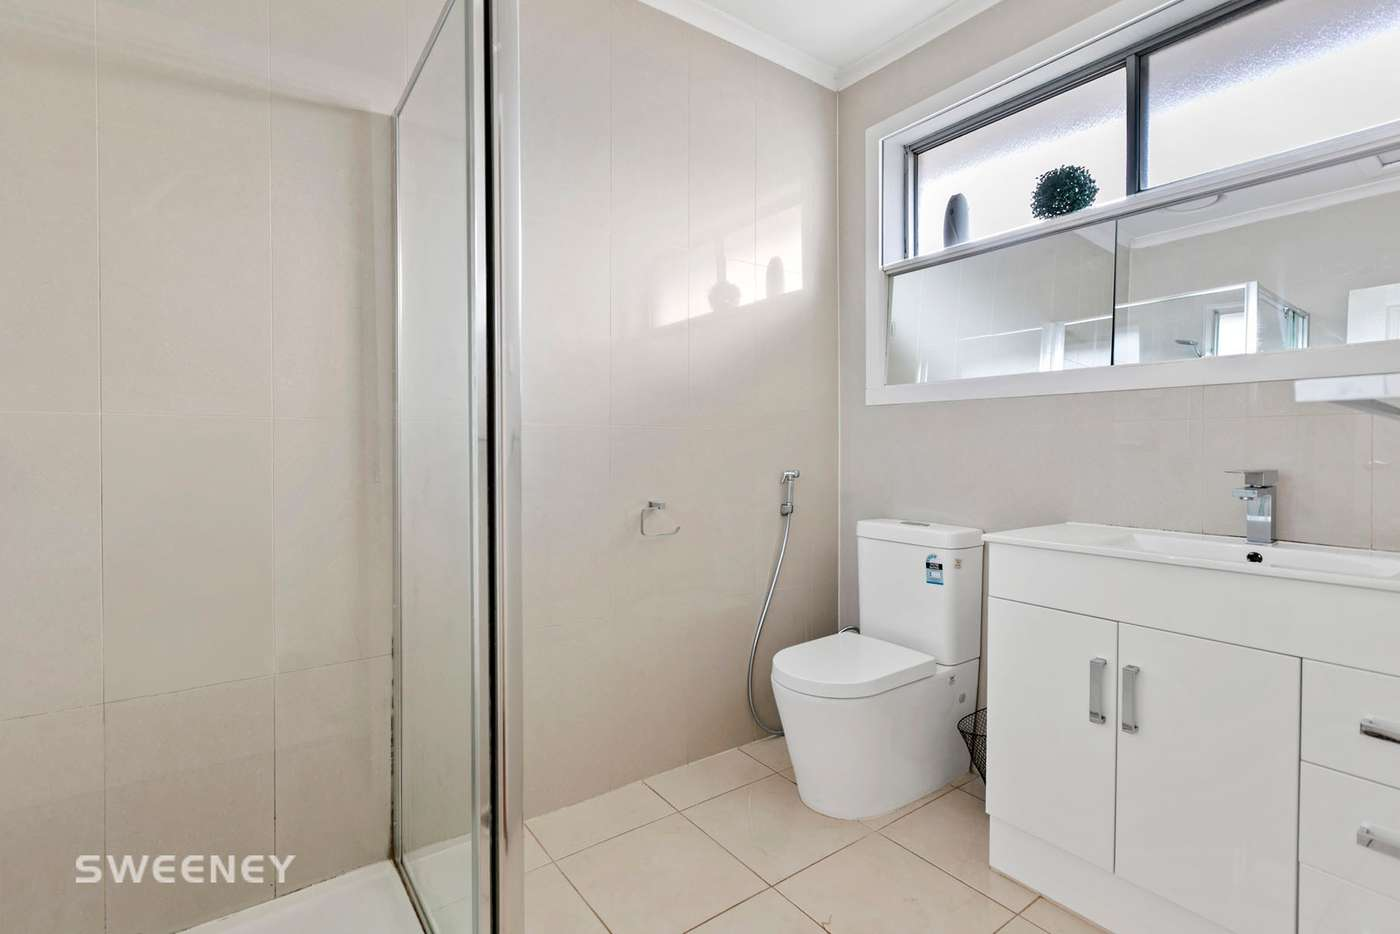 Sixth view of Homely house listing, 16 Fairbairn Road, Sunshine West VIC 3020